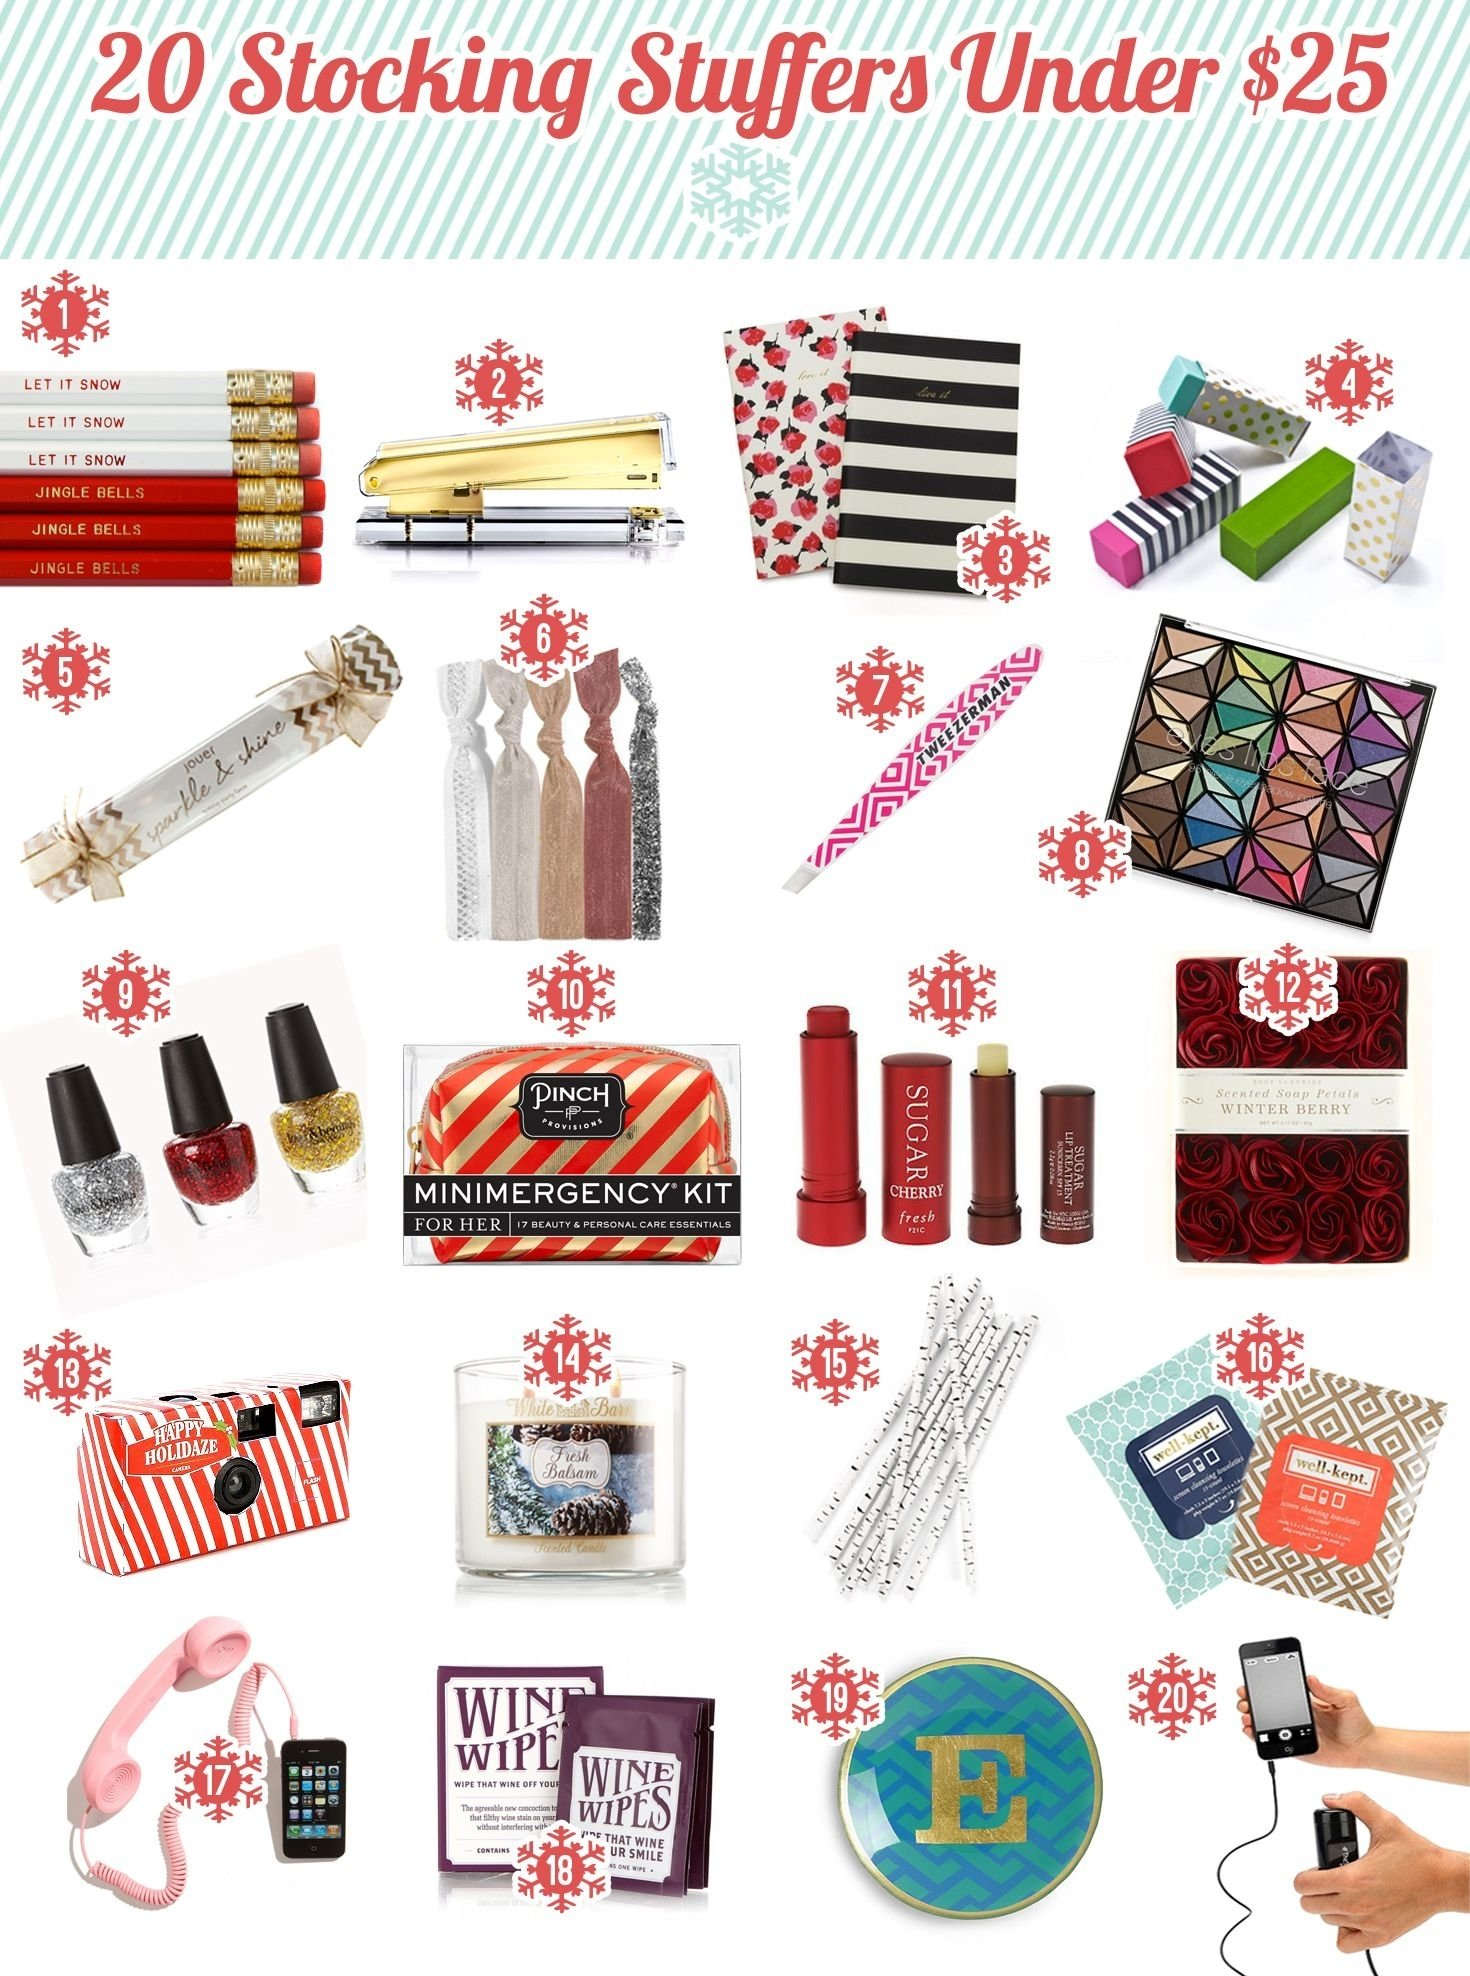 10 Trendy Ideas For Secret Santa Gifts 2013 holiday gift guide secret santa gift ideas under 25 most are 12